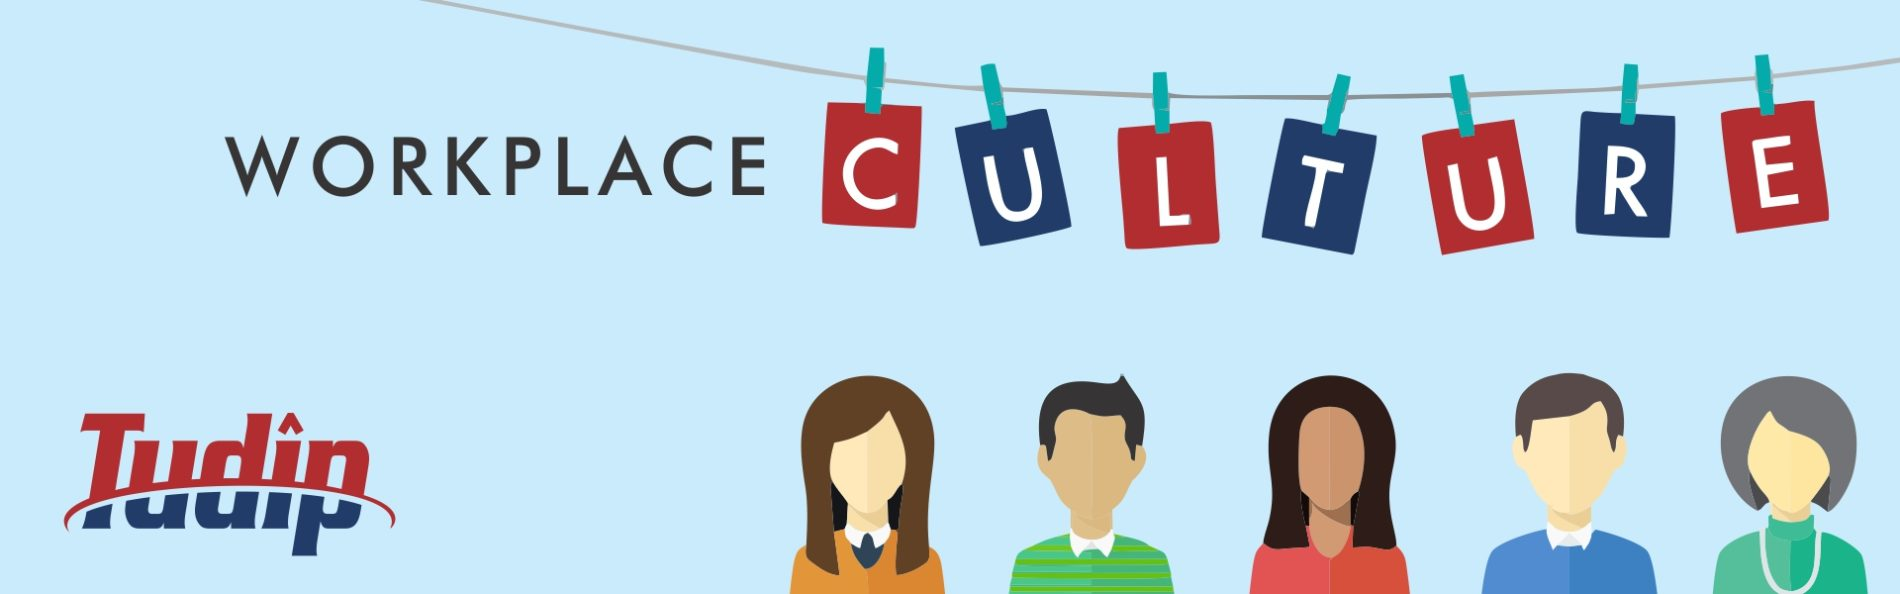 workplace culture Blog Header image